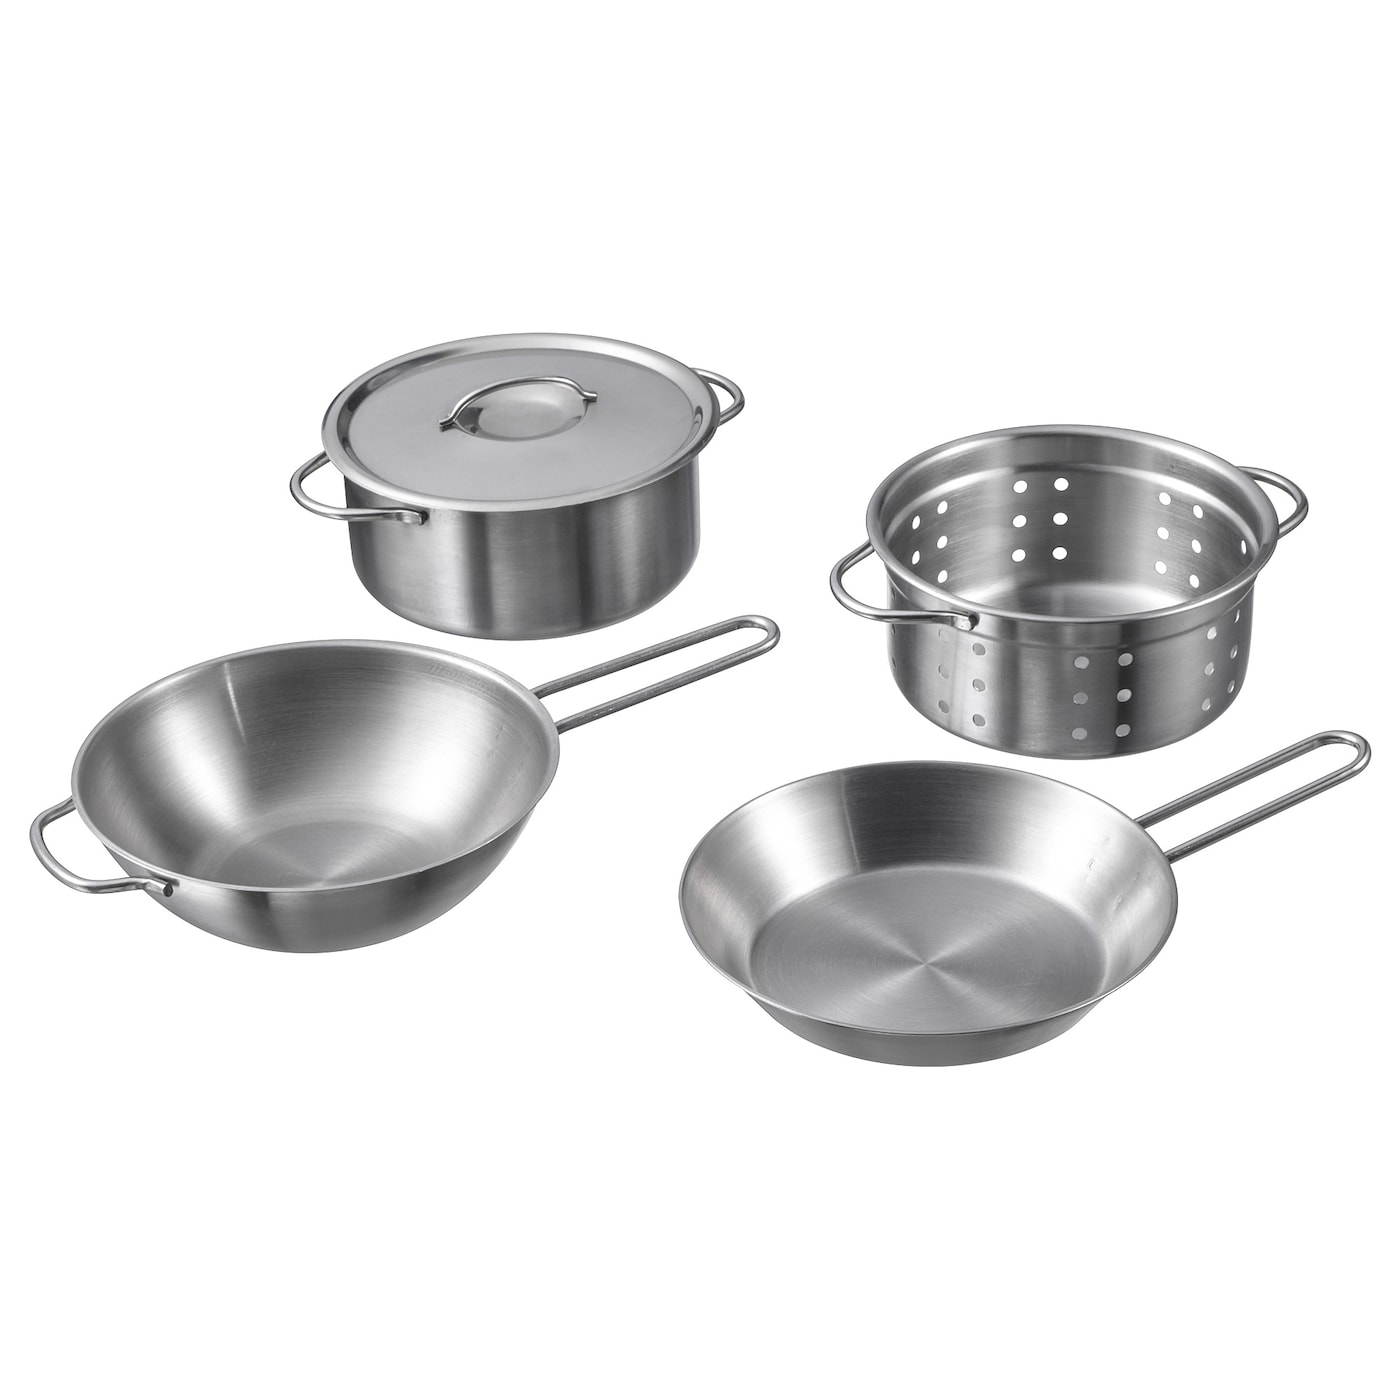 DUKTIG 12-piece toy cookware set - stainless steel color